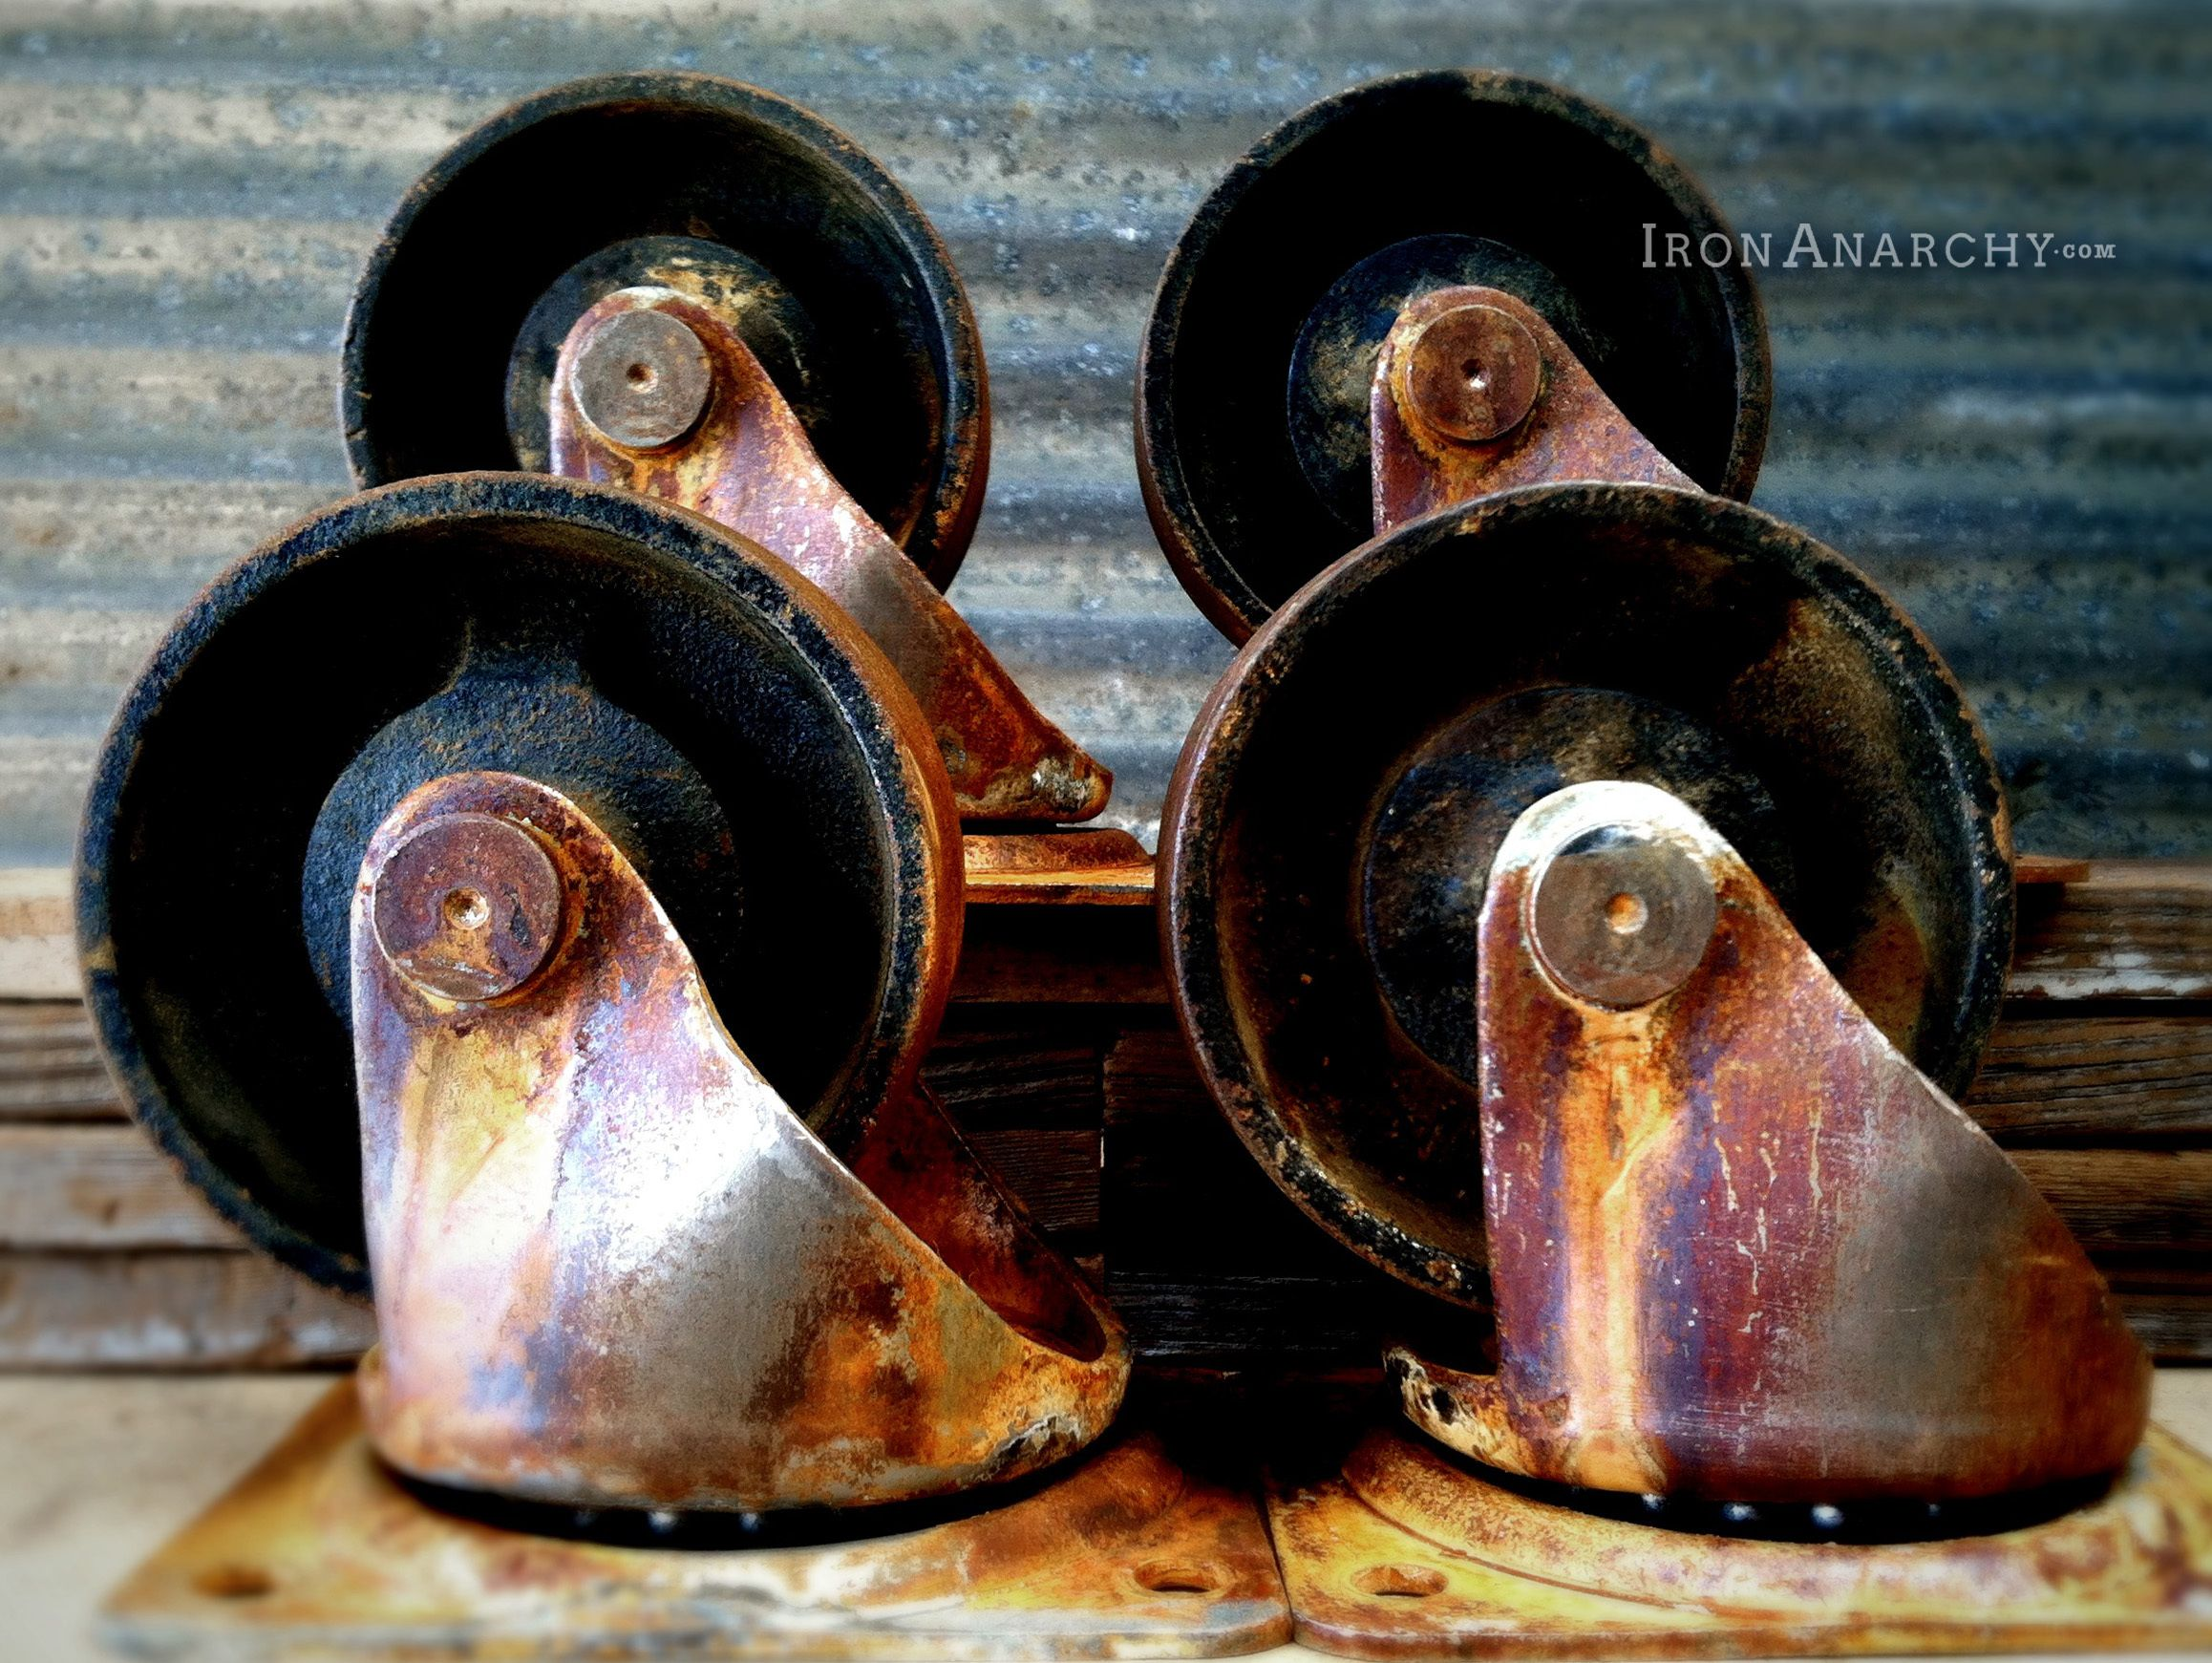 Factory caster vintage industrial furniture - Vintage Factory Cart Casters For An Industrial Pallet Coffee Table From Ironanarchy Com